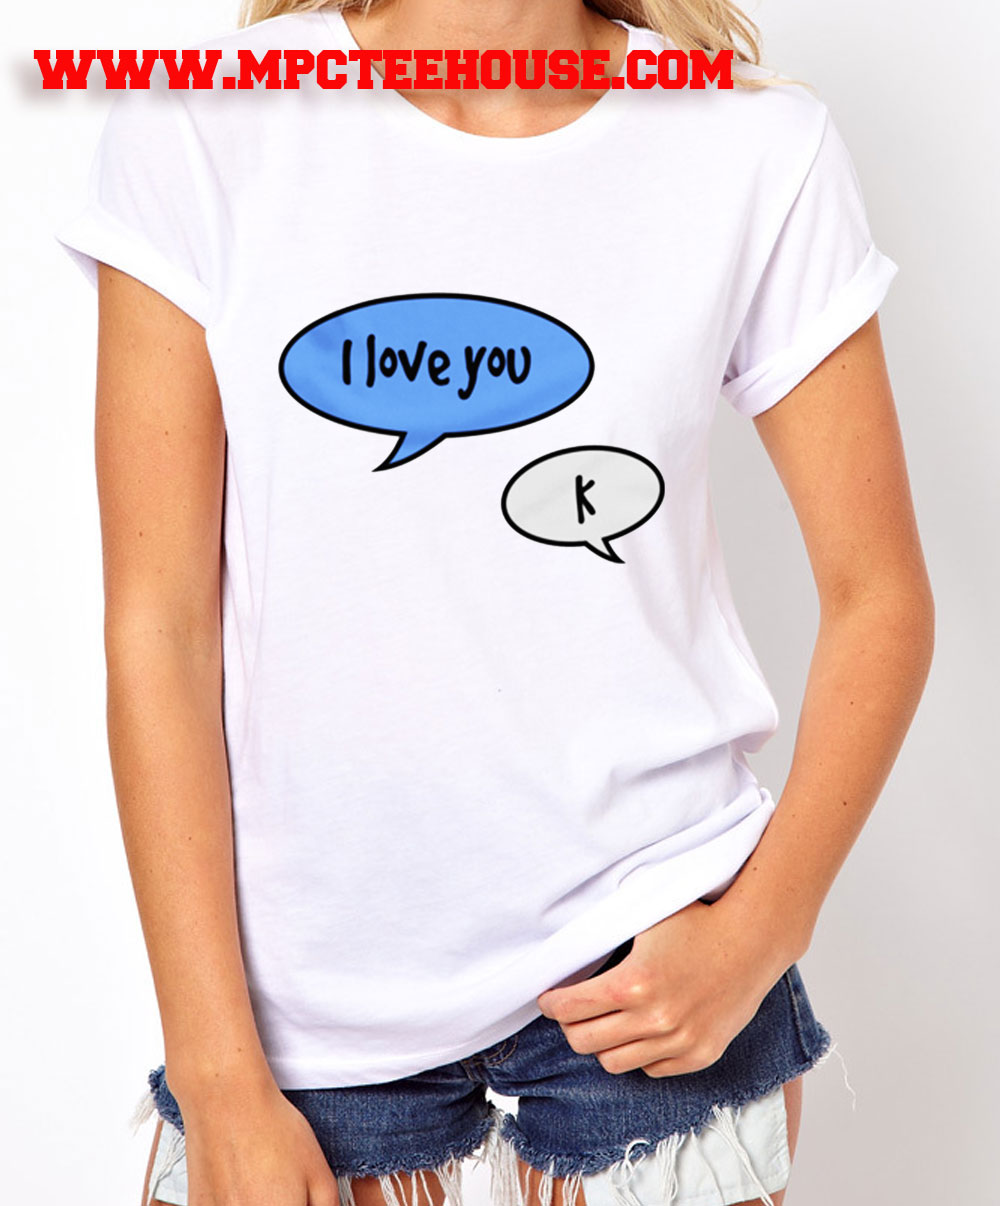 I Love You K Text T Shirt Mpcteehouse